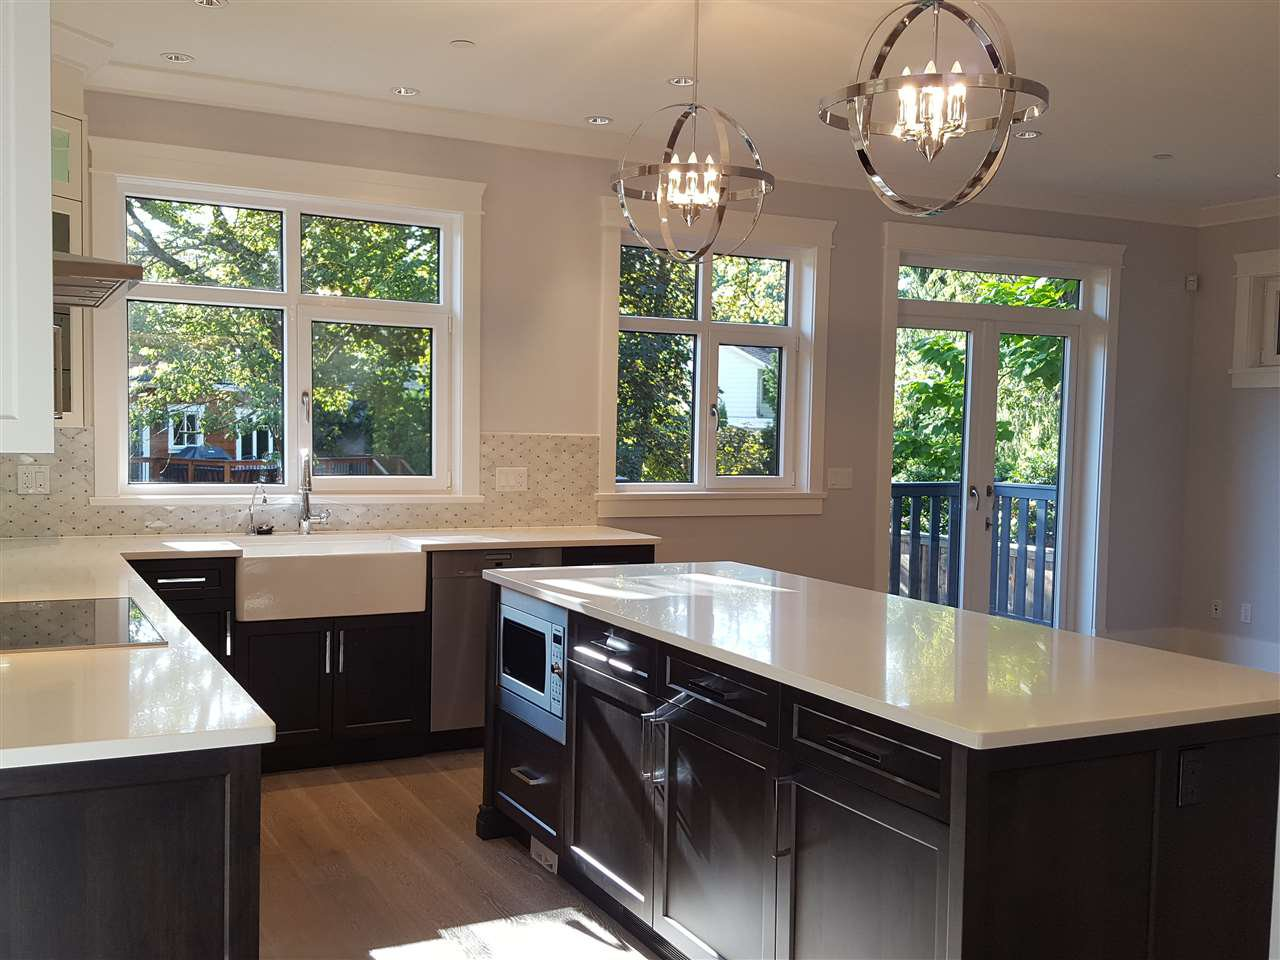 Photo 6: Photos: 4333 KEVIN Place in Vancouver: Dunbar House for sale (Vancouver West)  : MLS®# R2200814